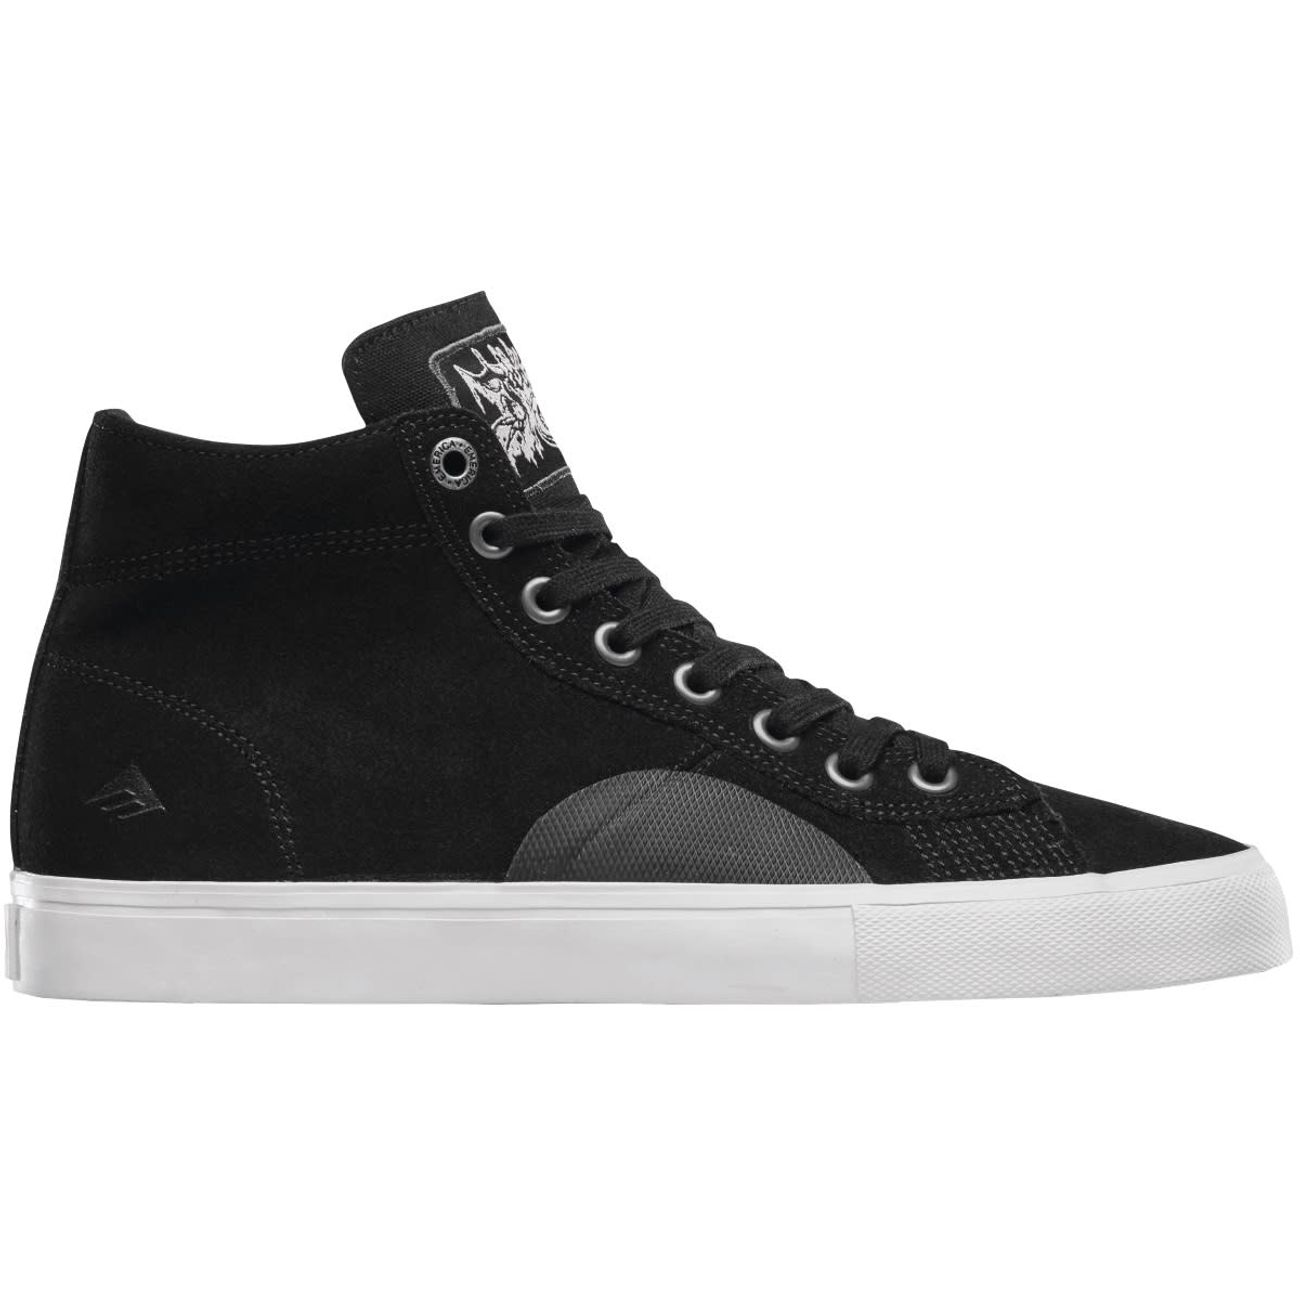 Us11 Eu12 Homme 46 Indicator Black Multisport High Emerica Funeral X Uk WDIEH29Y